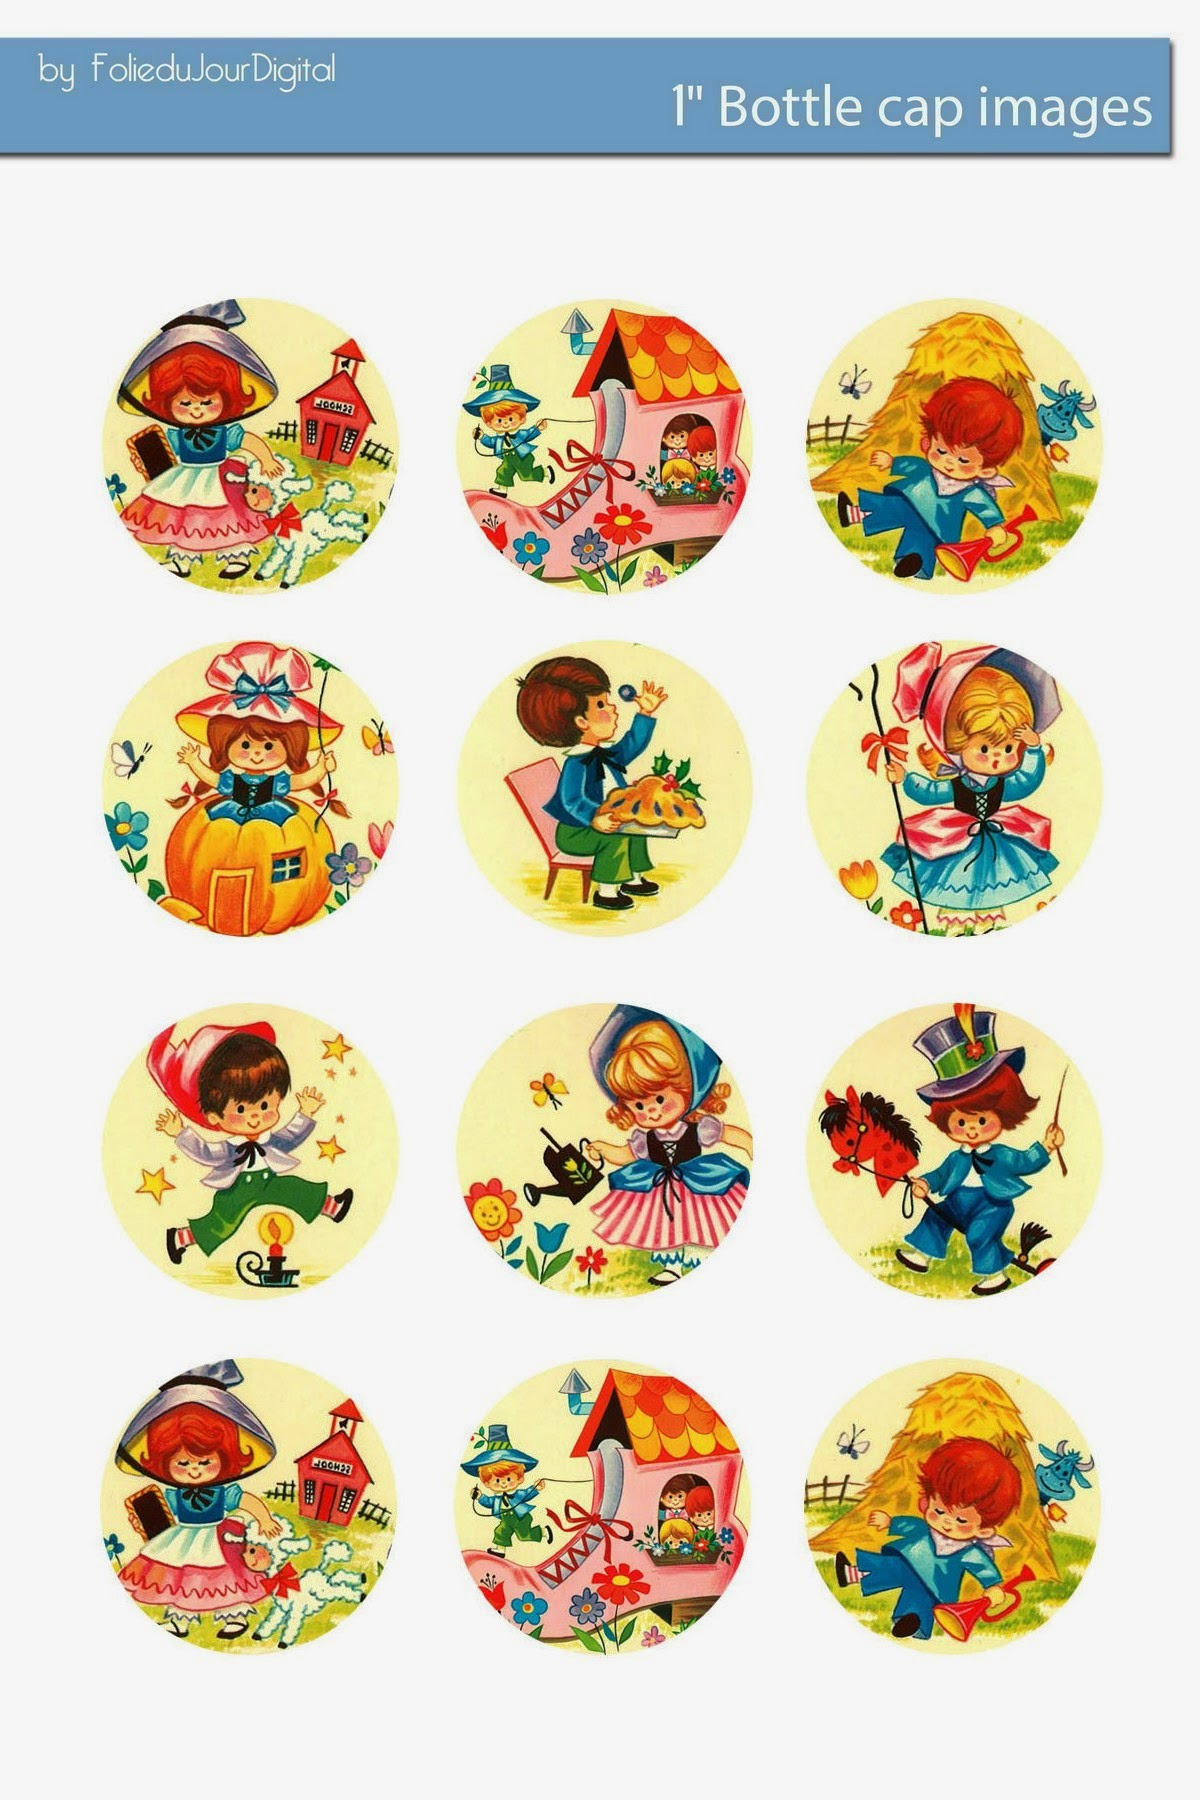 Mother Goose Nursery Rhymes Free Bottle Cap Images